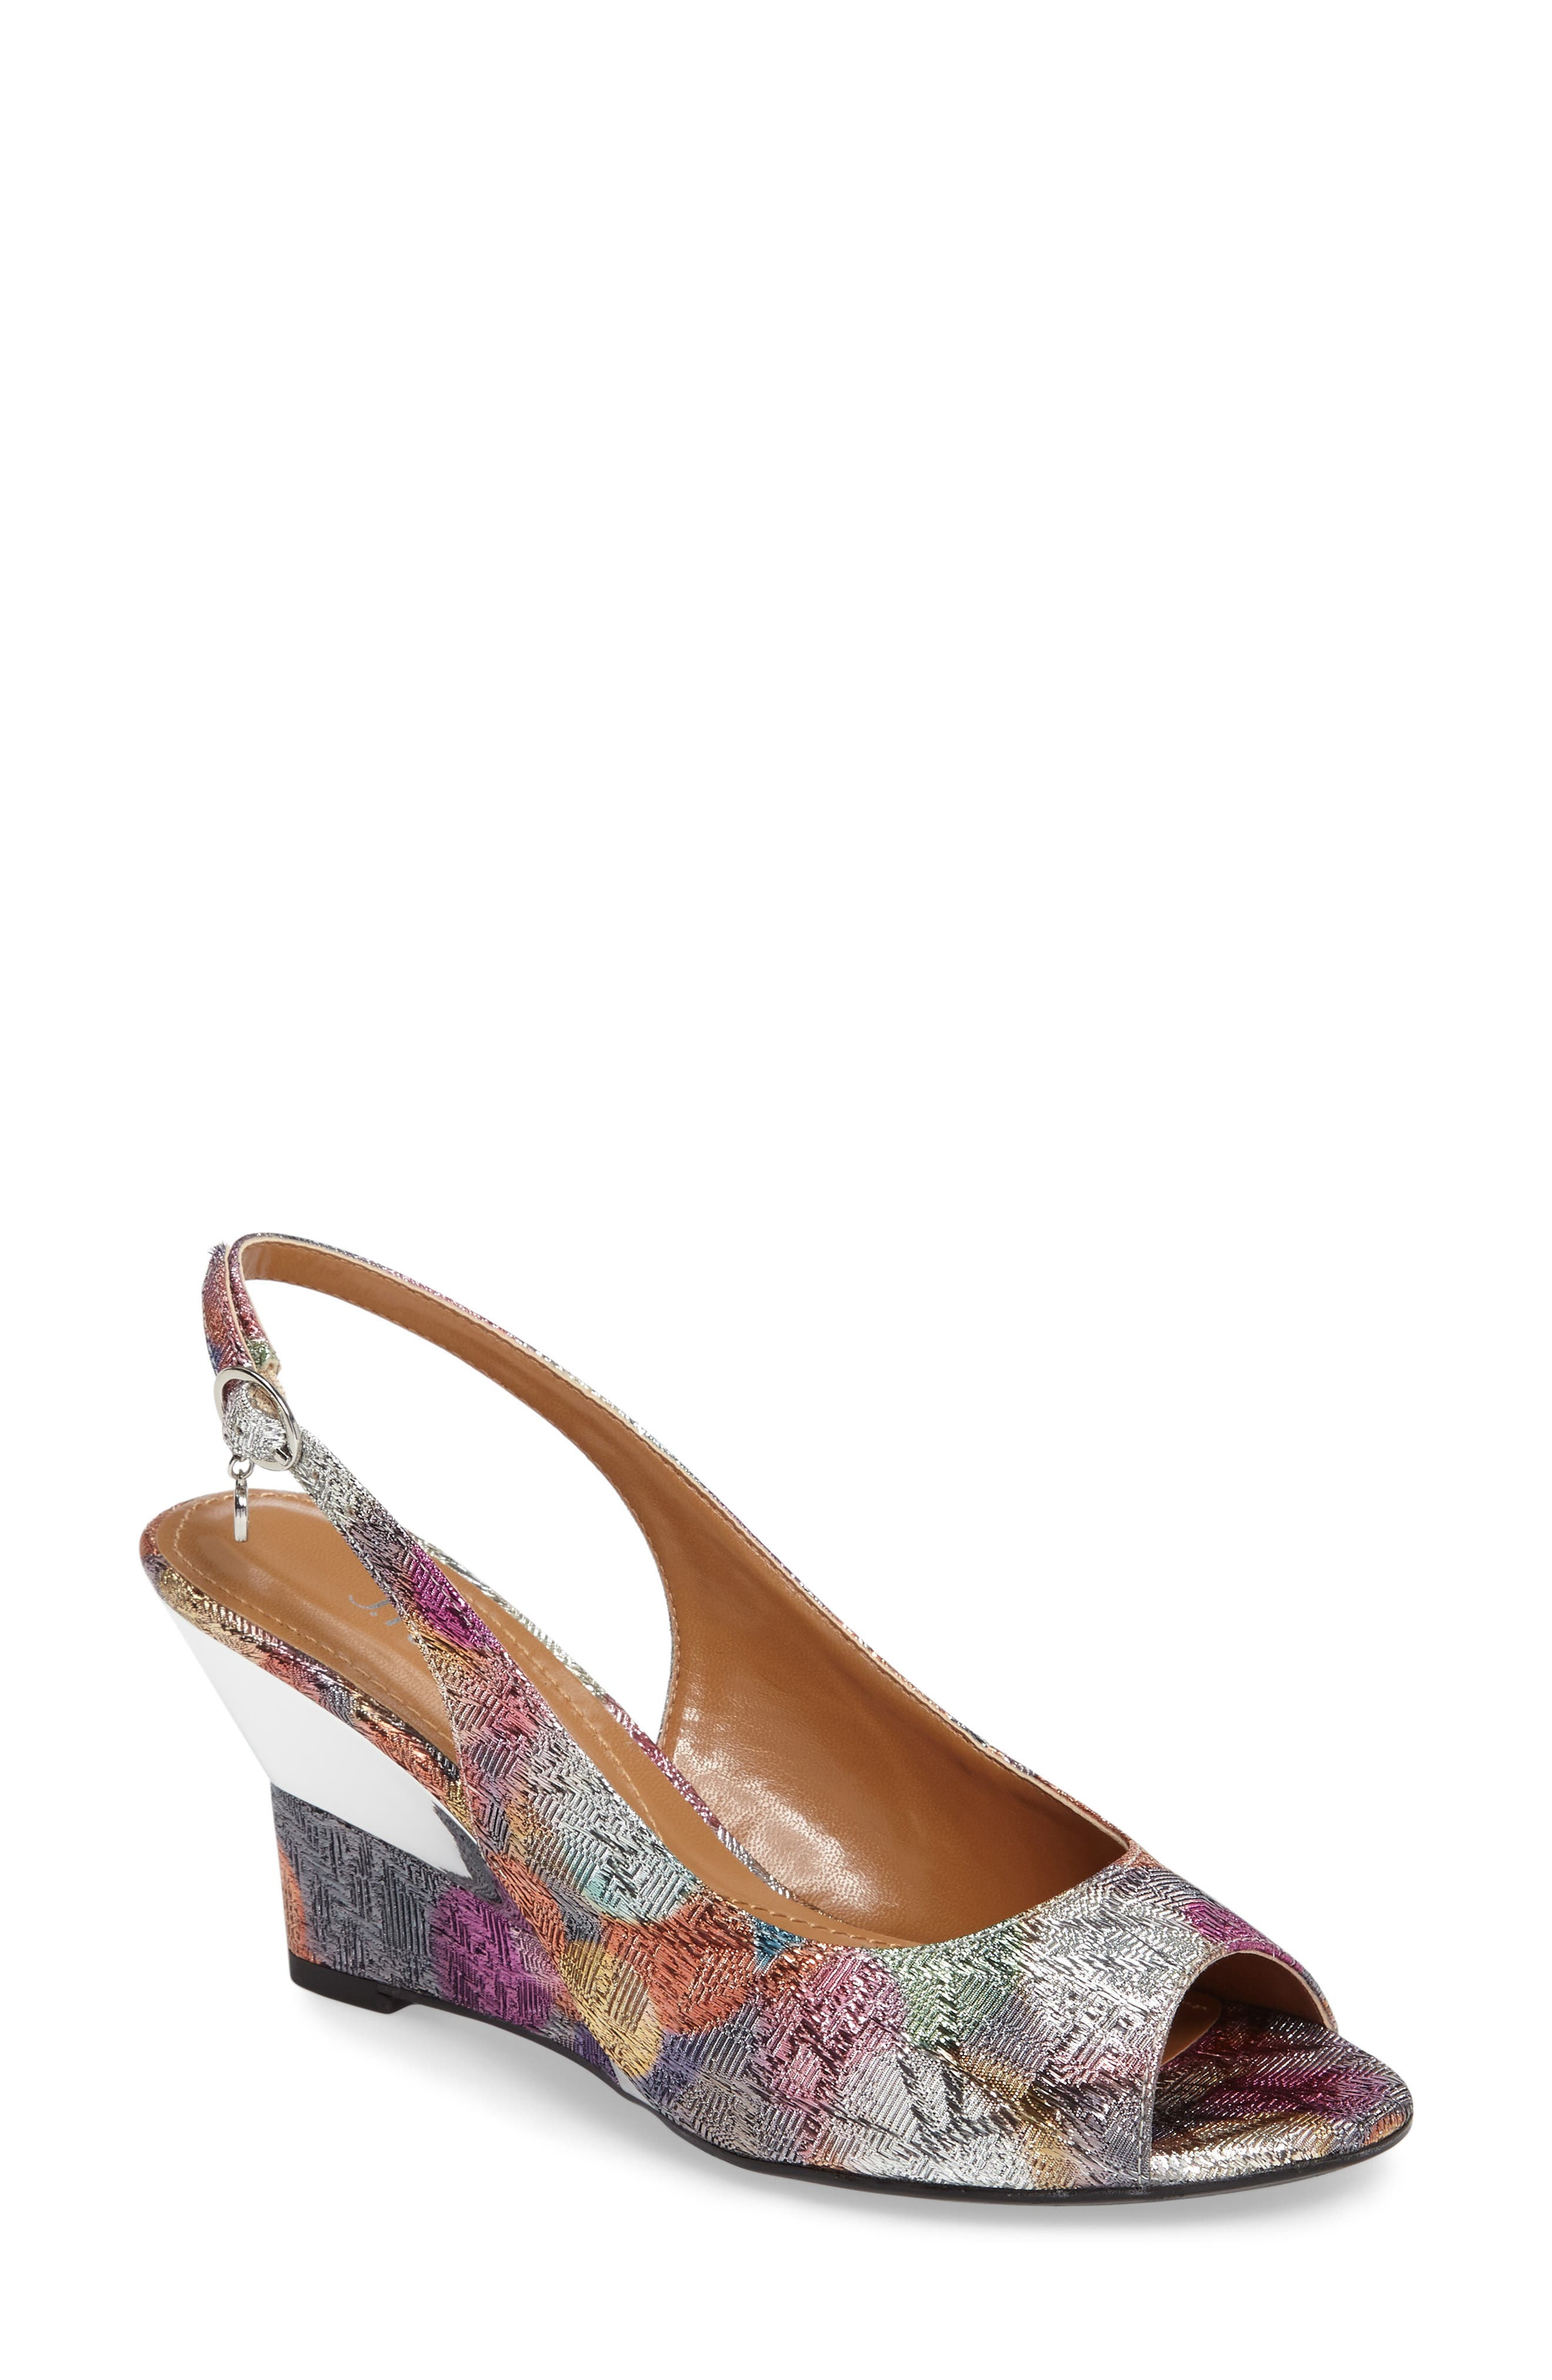 Sailaway Wedge Sandal,                         Main,                         color, Silver/ Pastel Multi Fabric